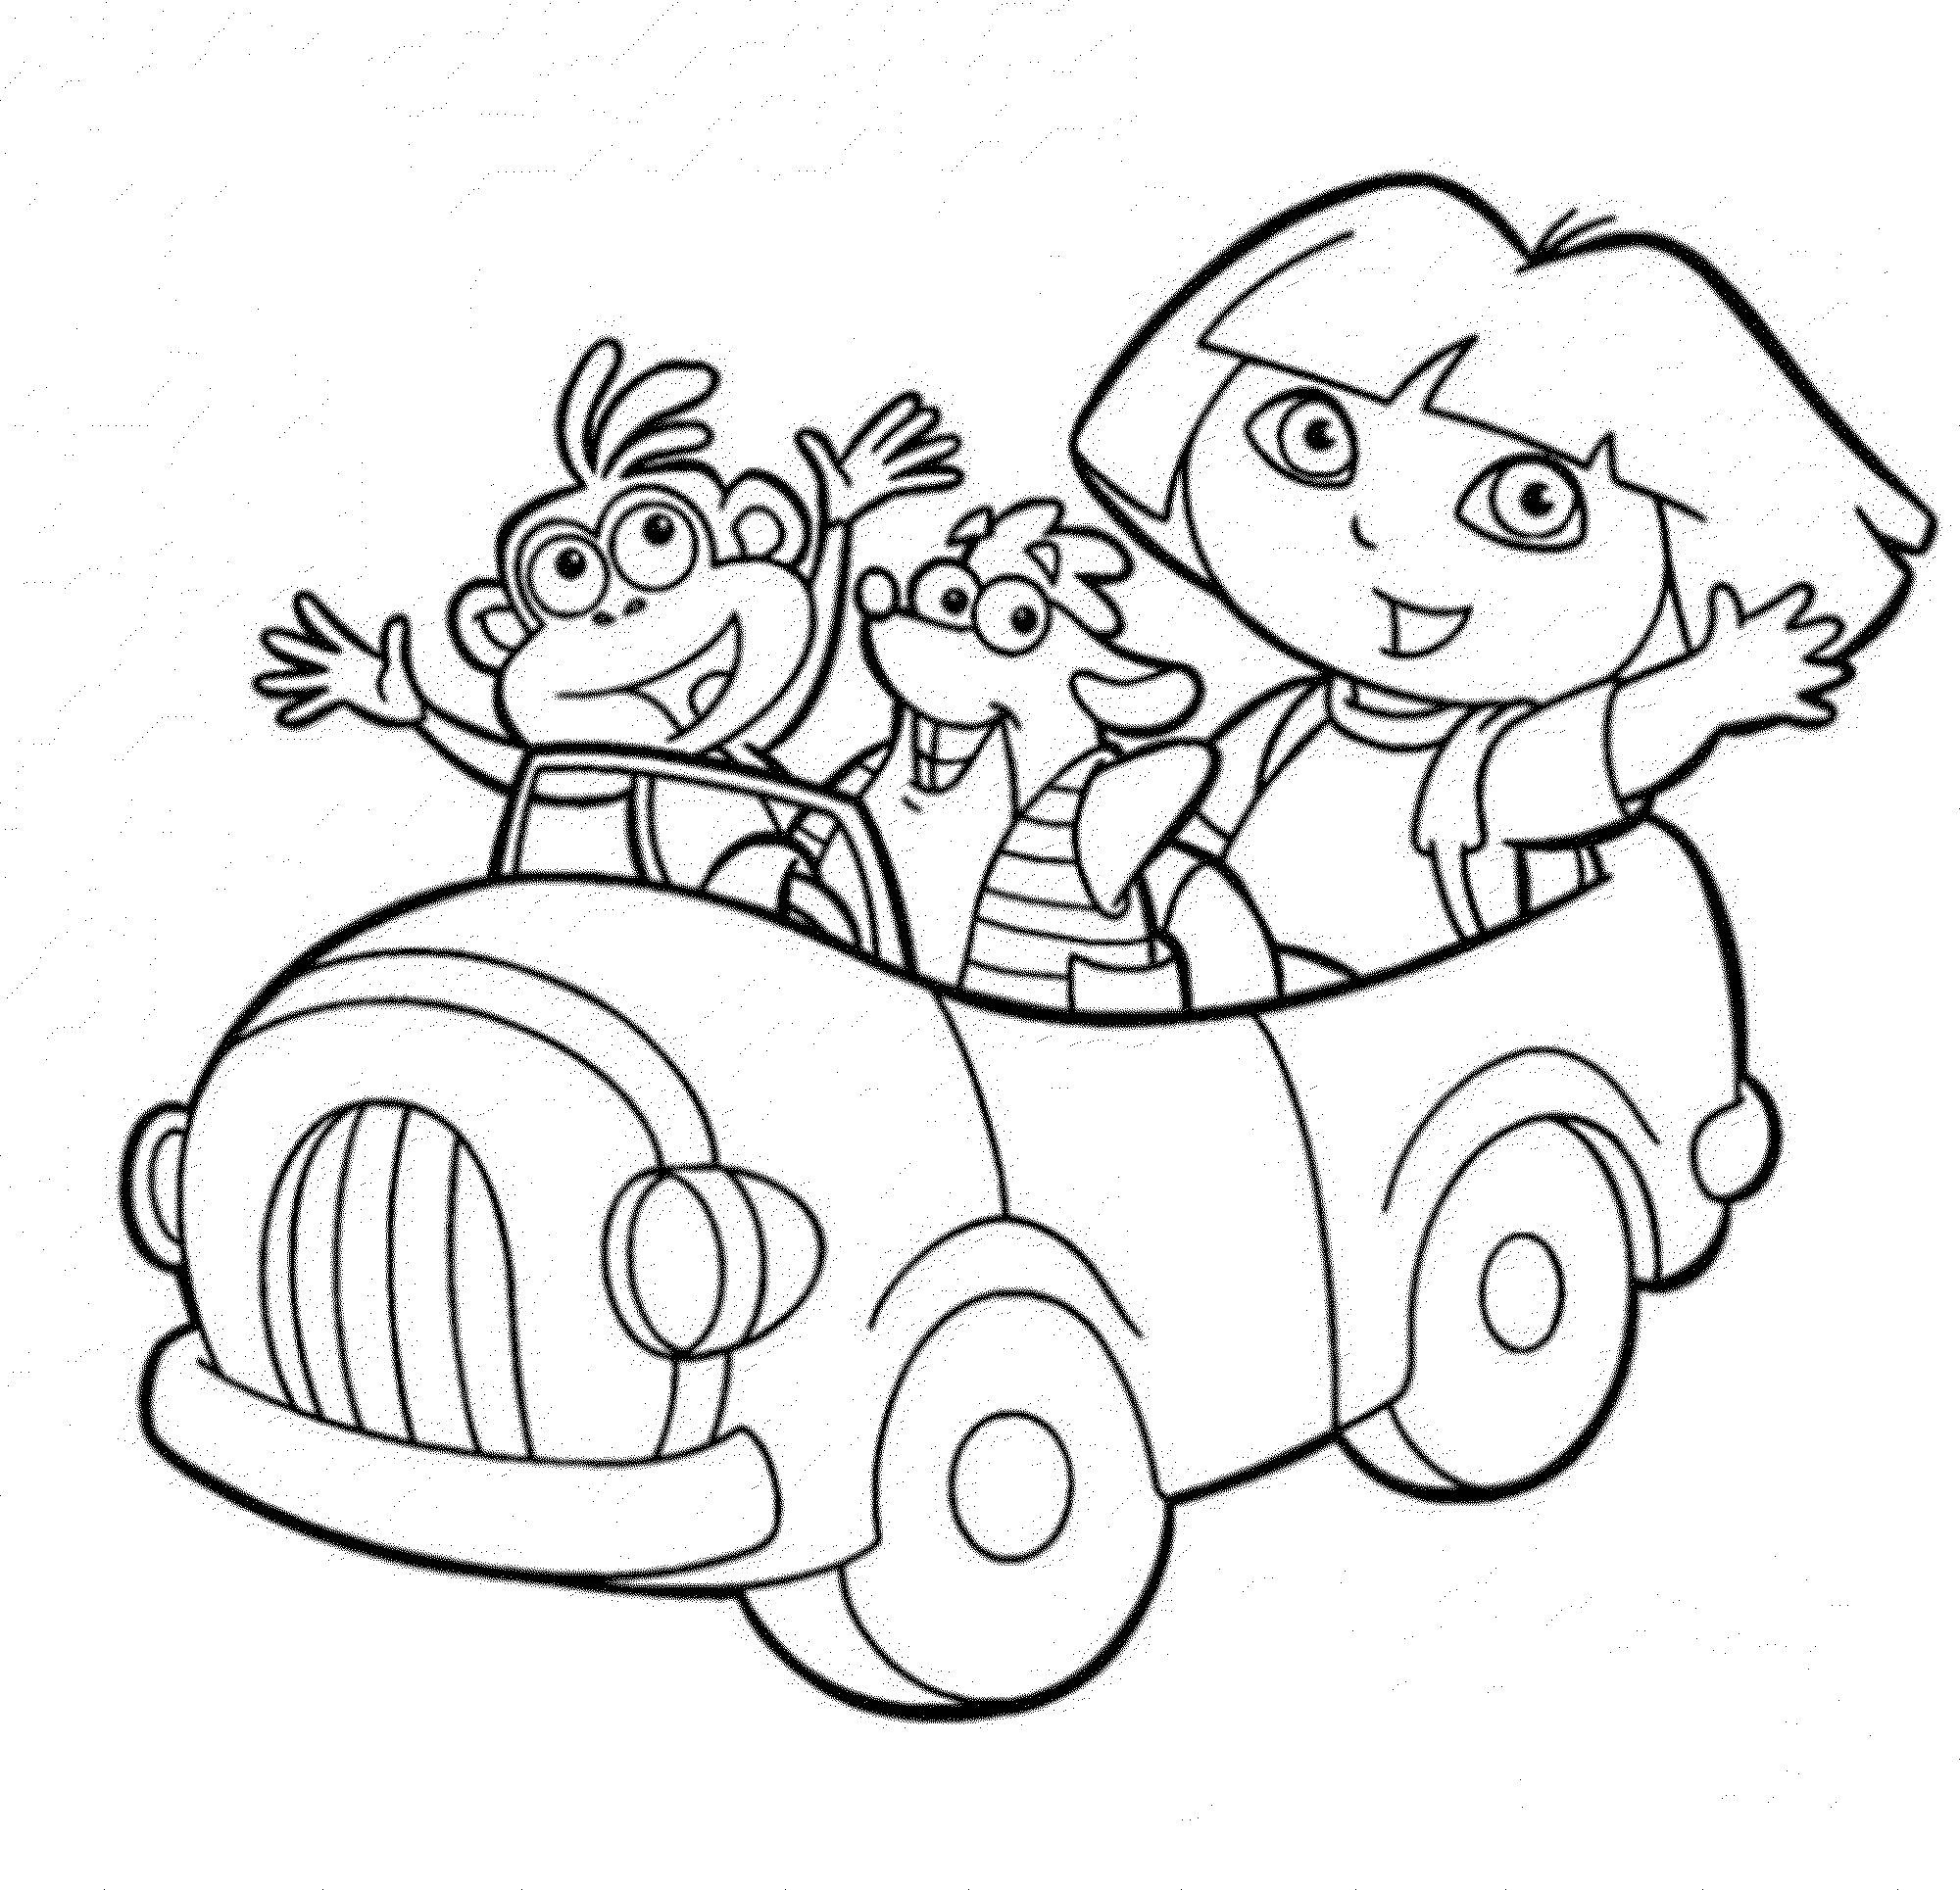 coloring sheets of dora print download dora coloring pages to learn new things of sheets dora coloring 1 1